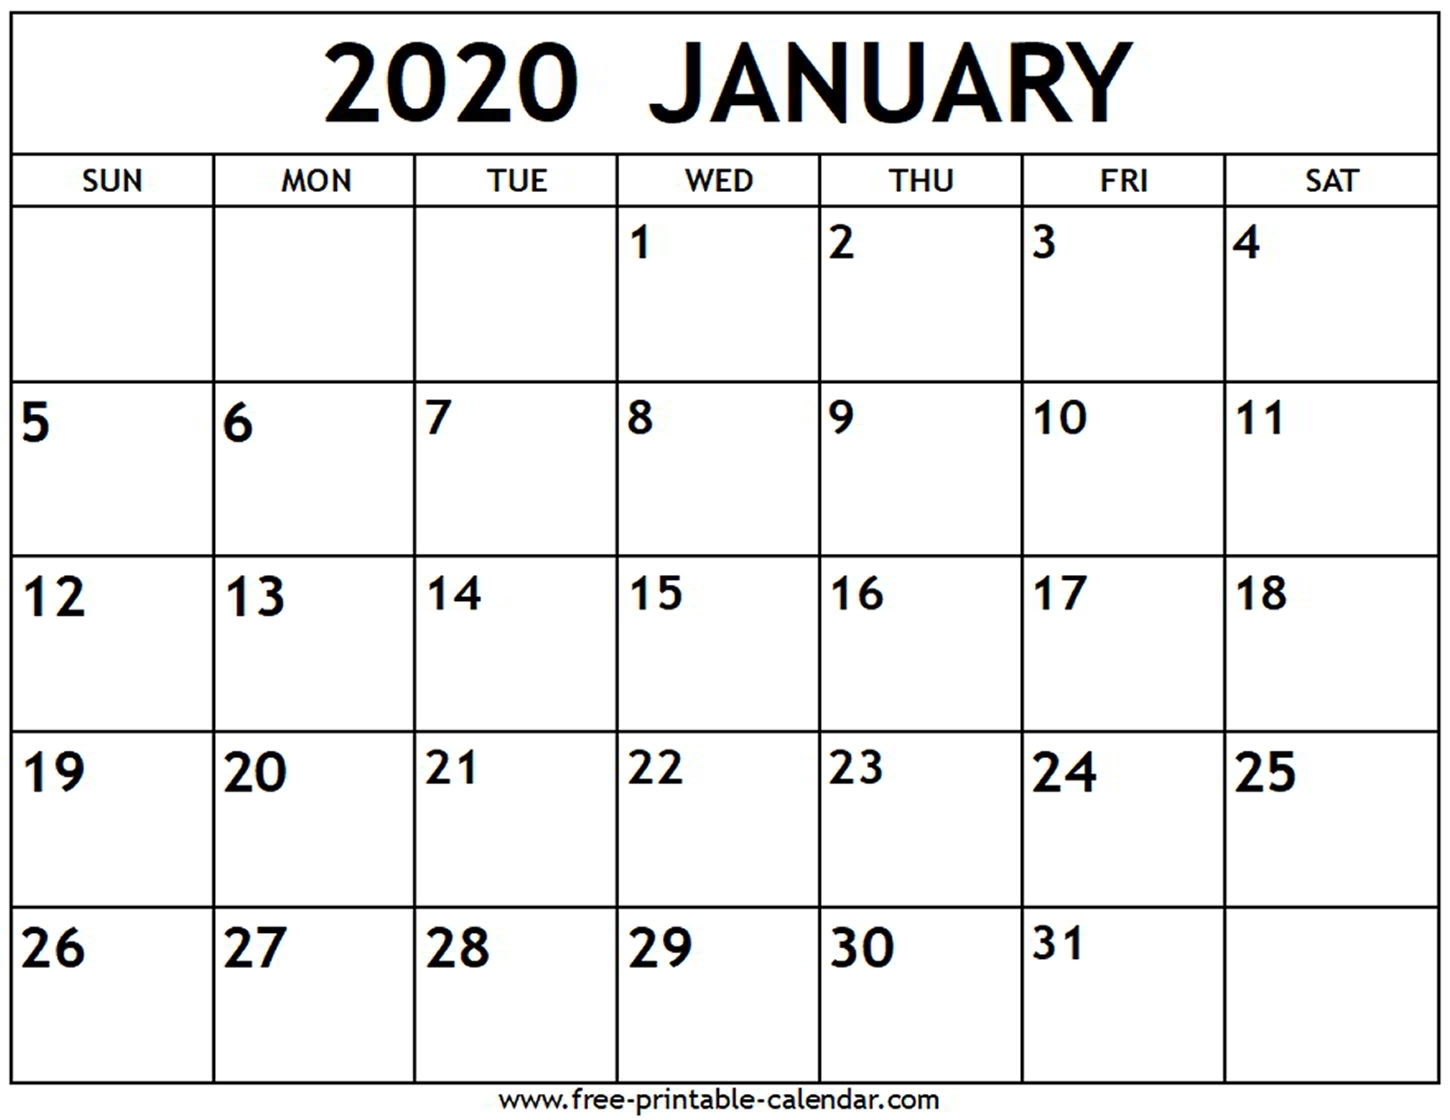 January 2020 Calendar - Free-Printable-Calendar inside Fill In Calendar 2020 Printable